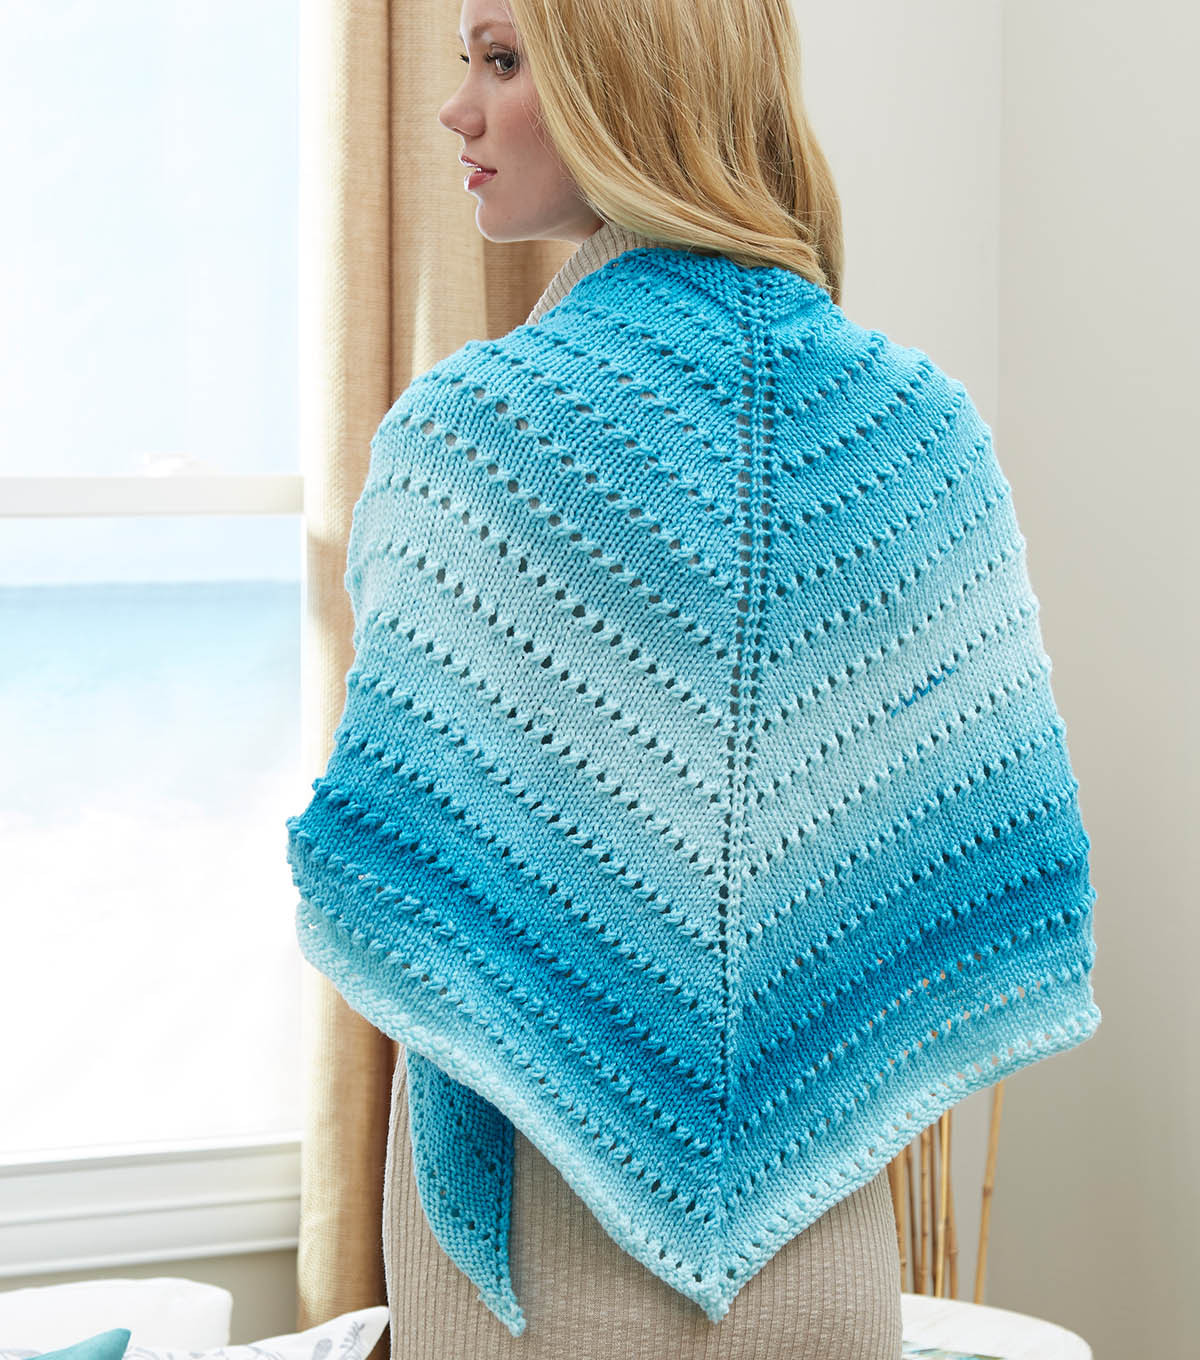 Lace Shawl Pattern Elegant How to Knit A Simple Lace Triangle Shawl ⋆ Knitting Bee Of Gorgeous 43 Models Lace Shawl Pattern